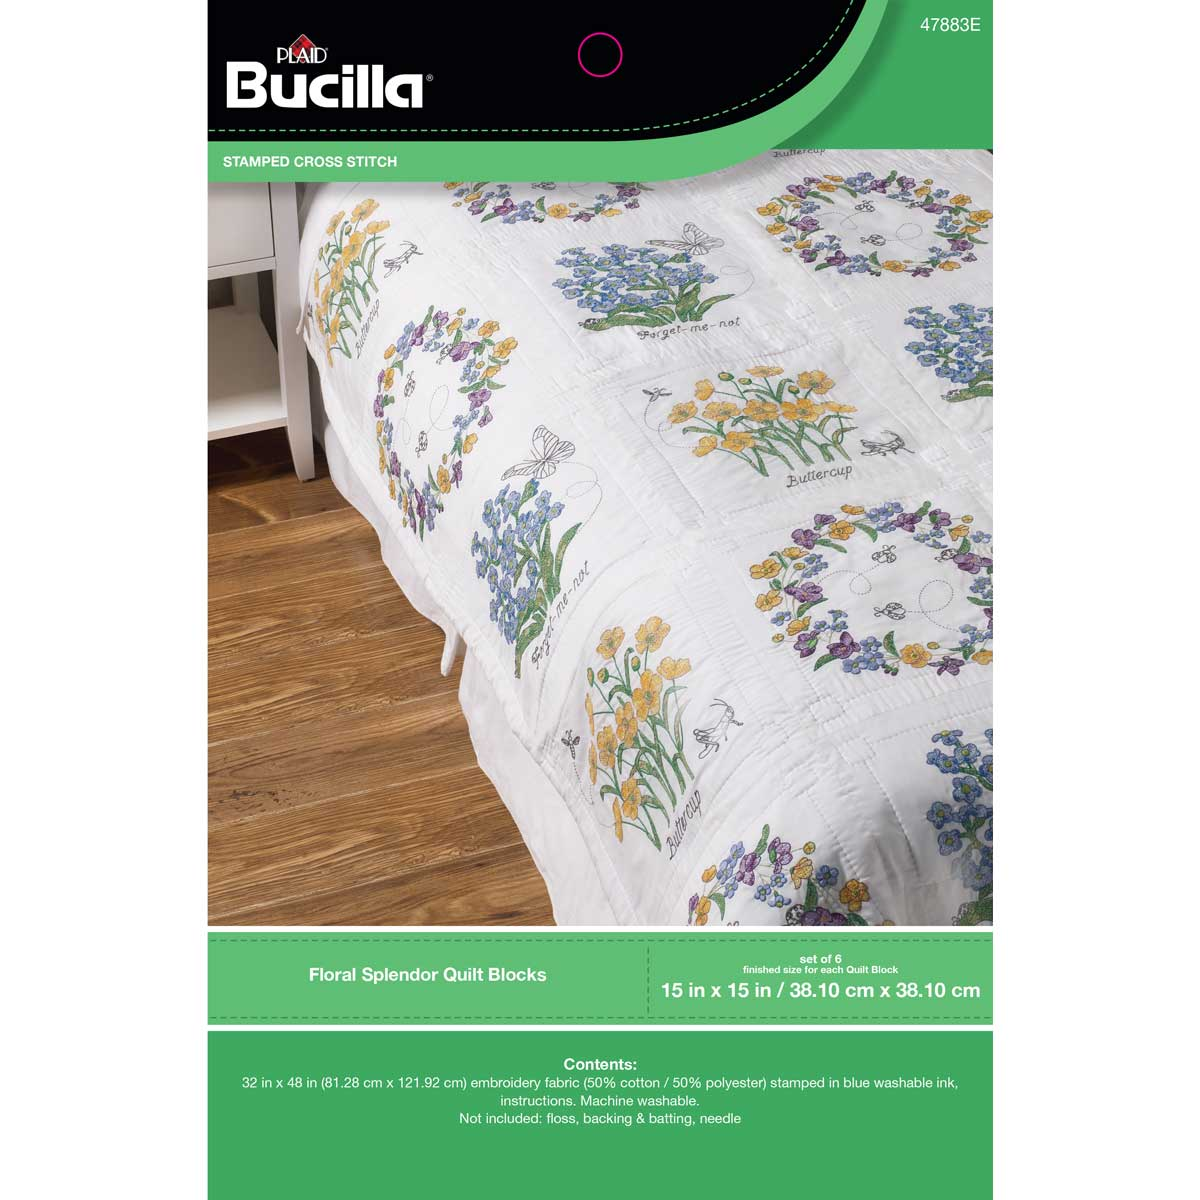 Bucilla ® Stamped Cross Stitch - Quilt Blocks - Floral Splendor - 47883E